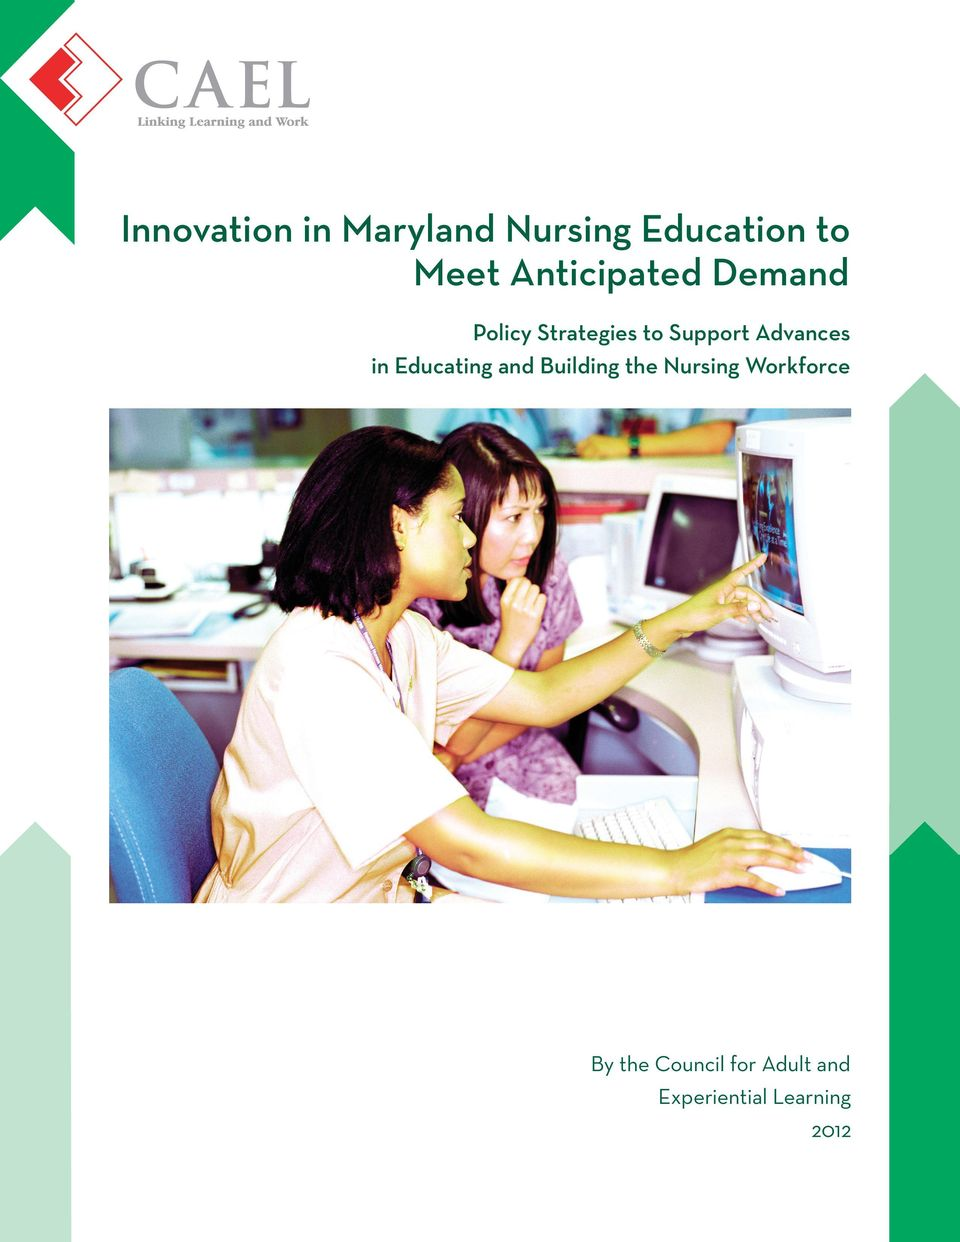 Advances in Educating and Building the Nursing